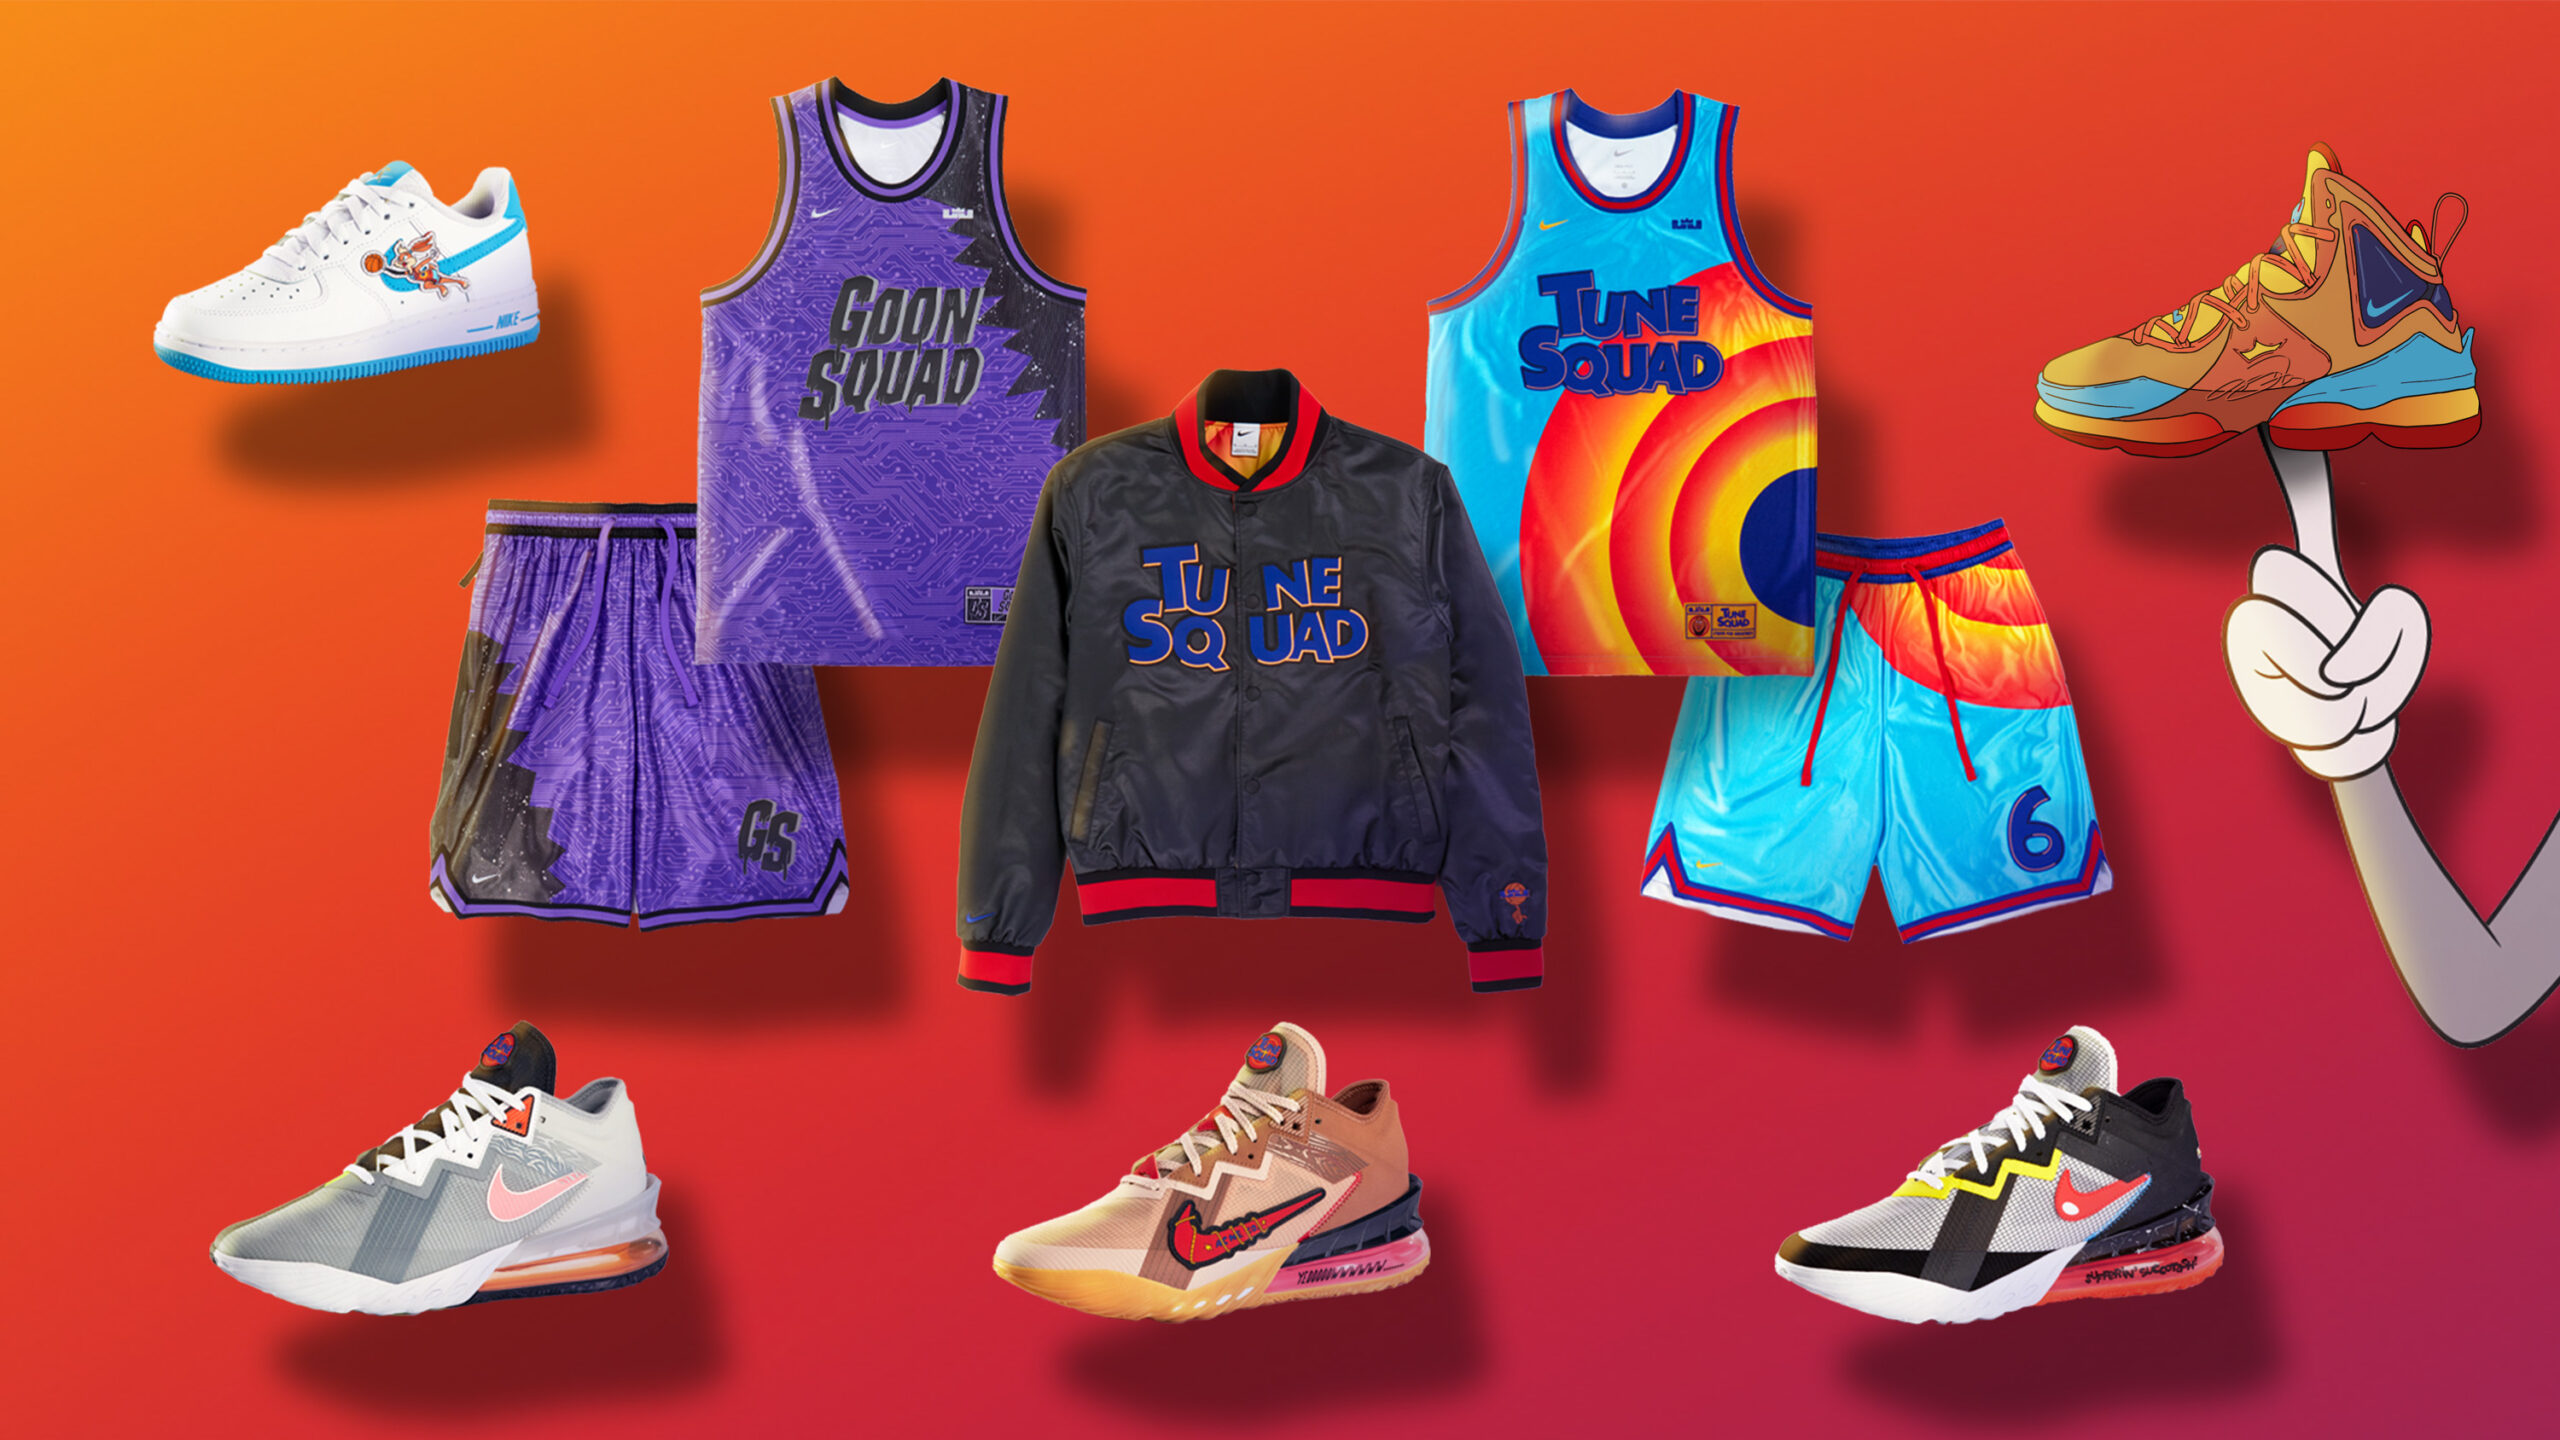 New Space Jam A New Legacy Products from Nike